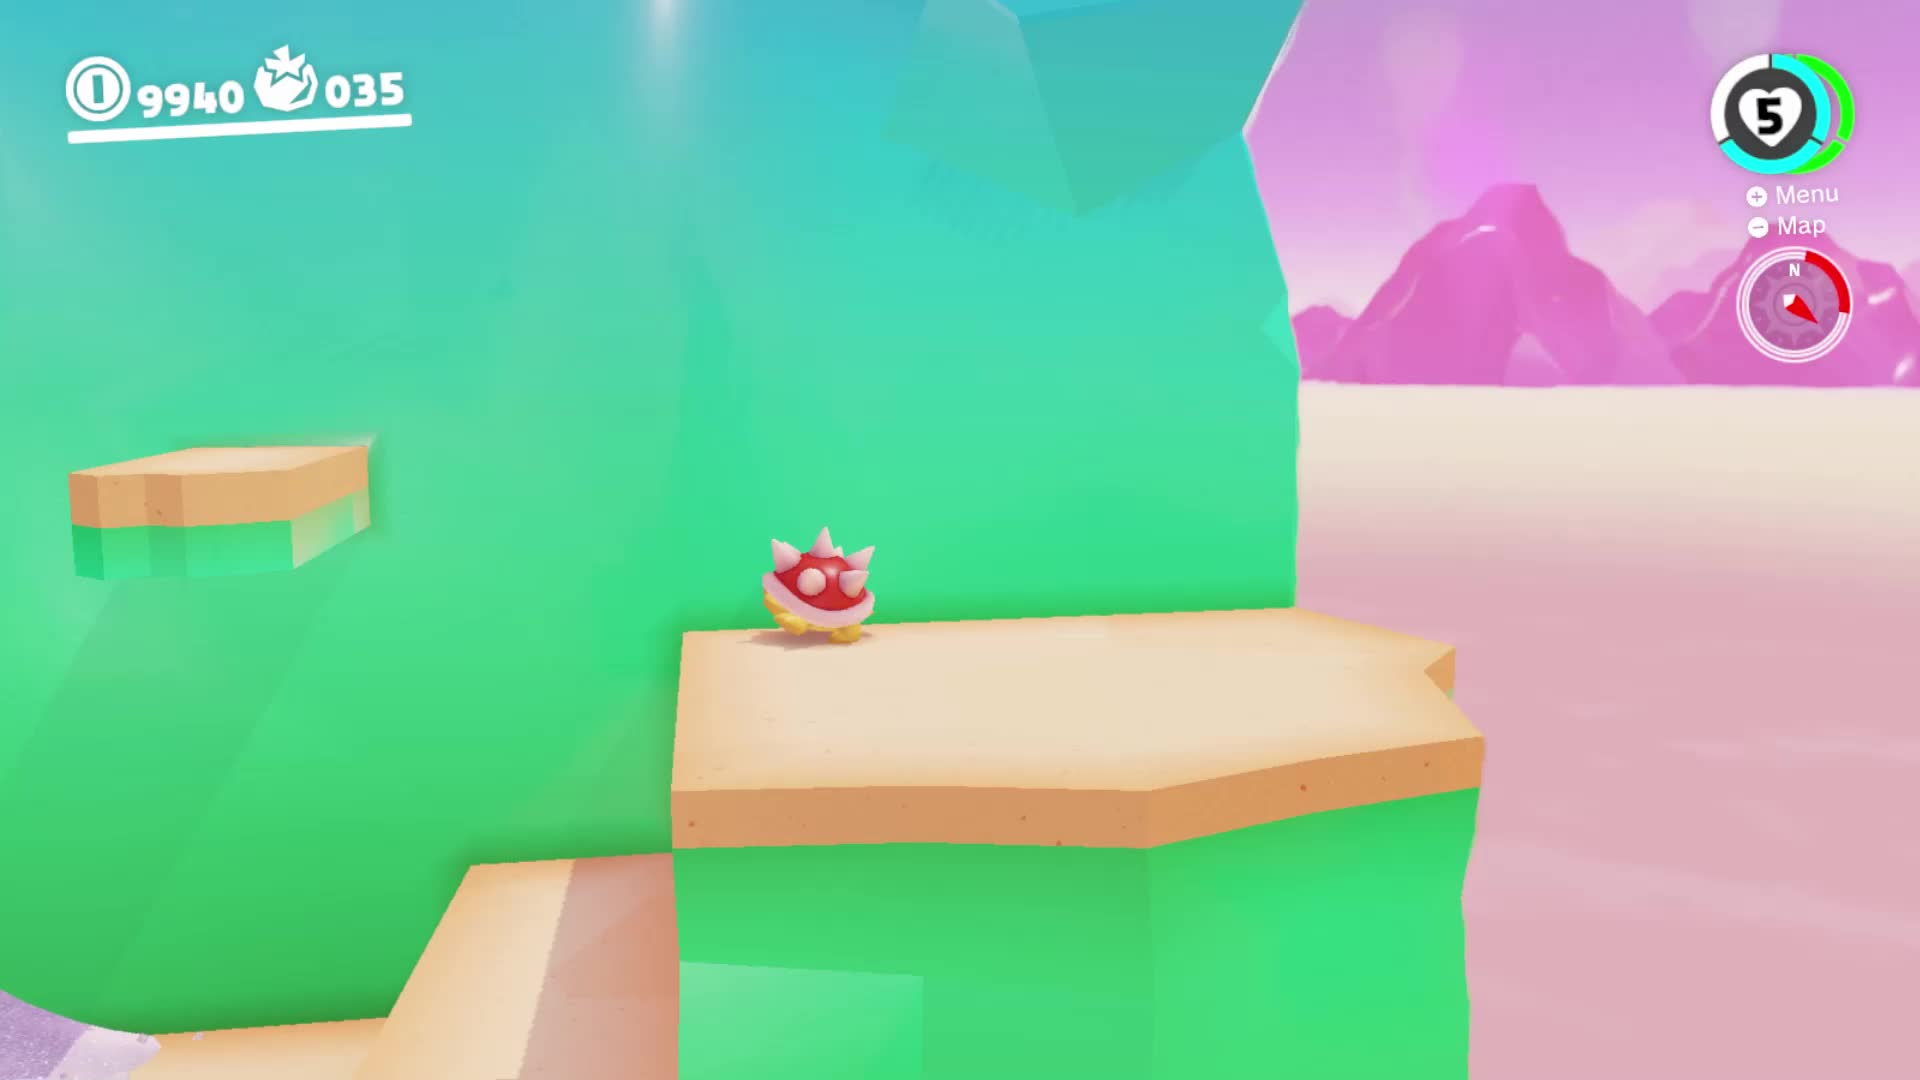 Super Mario Odyssey on Switch GIFs